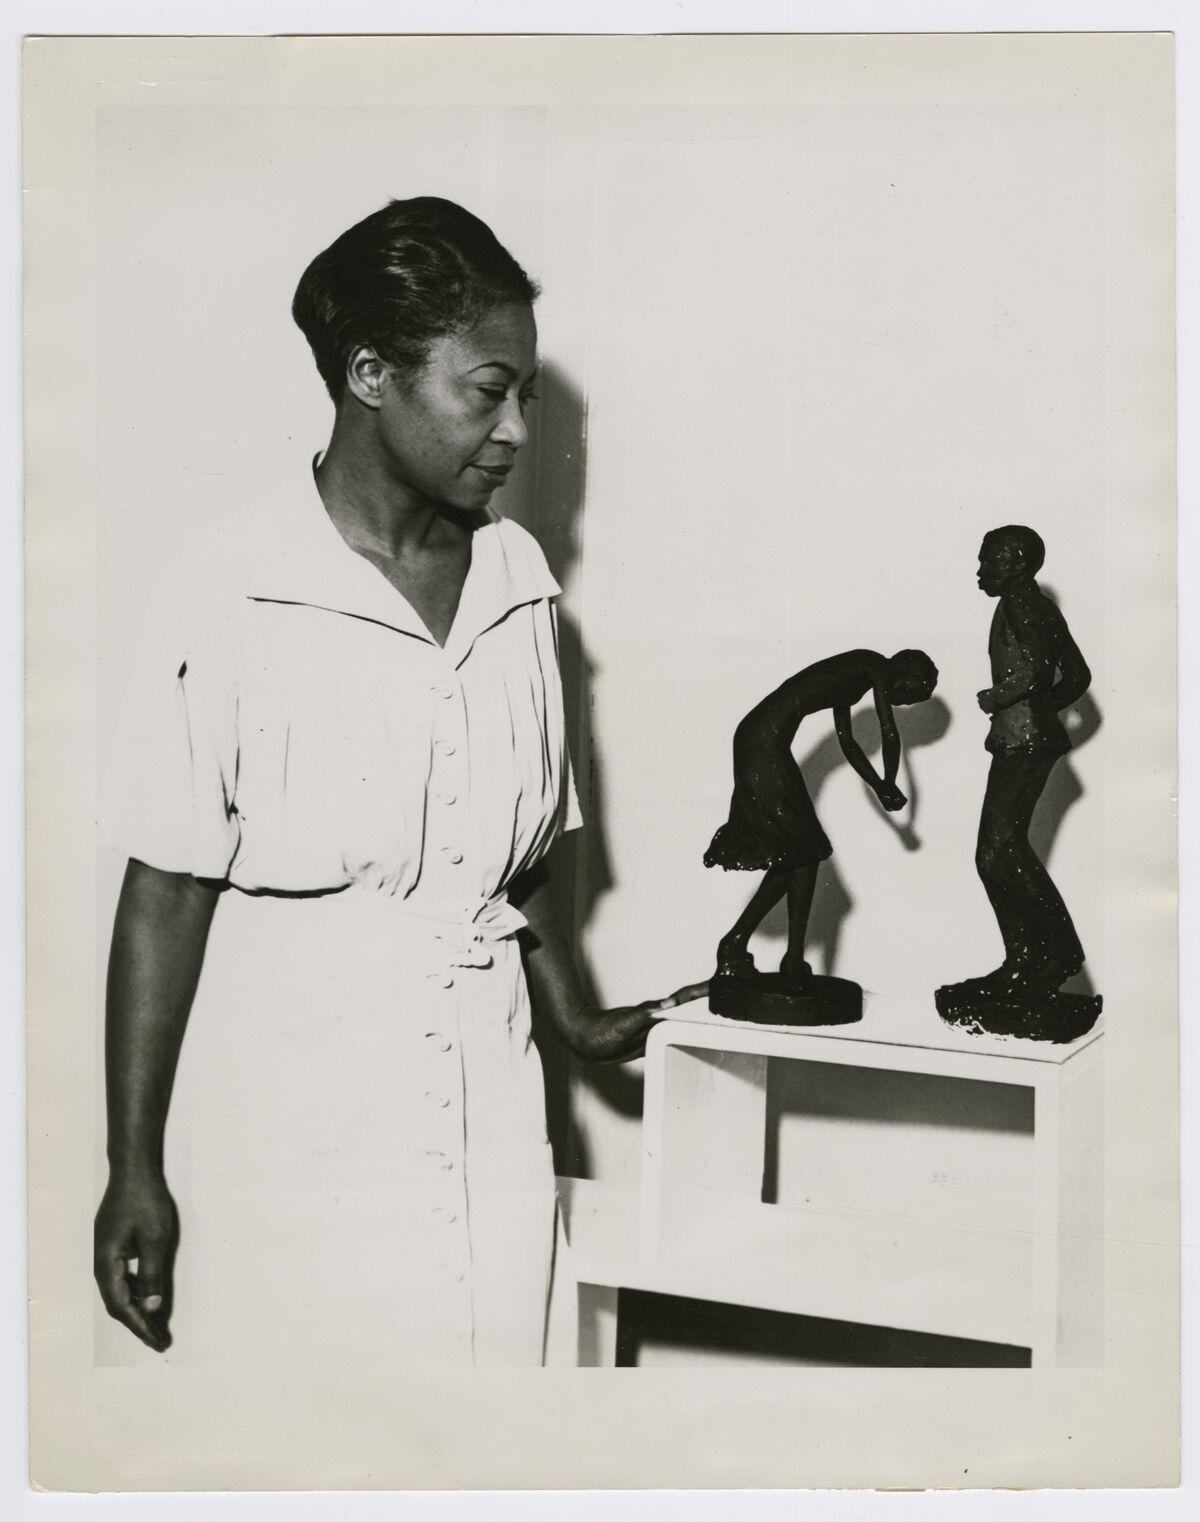 Augusta Savage viewing two of her sculptures, Susie Q and Truckin, 1939.  Courtesy of the Schomburg Center for Research in Black Culture, NYPL.